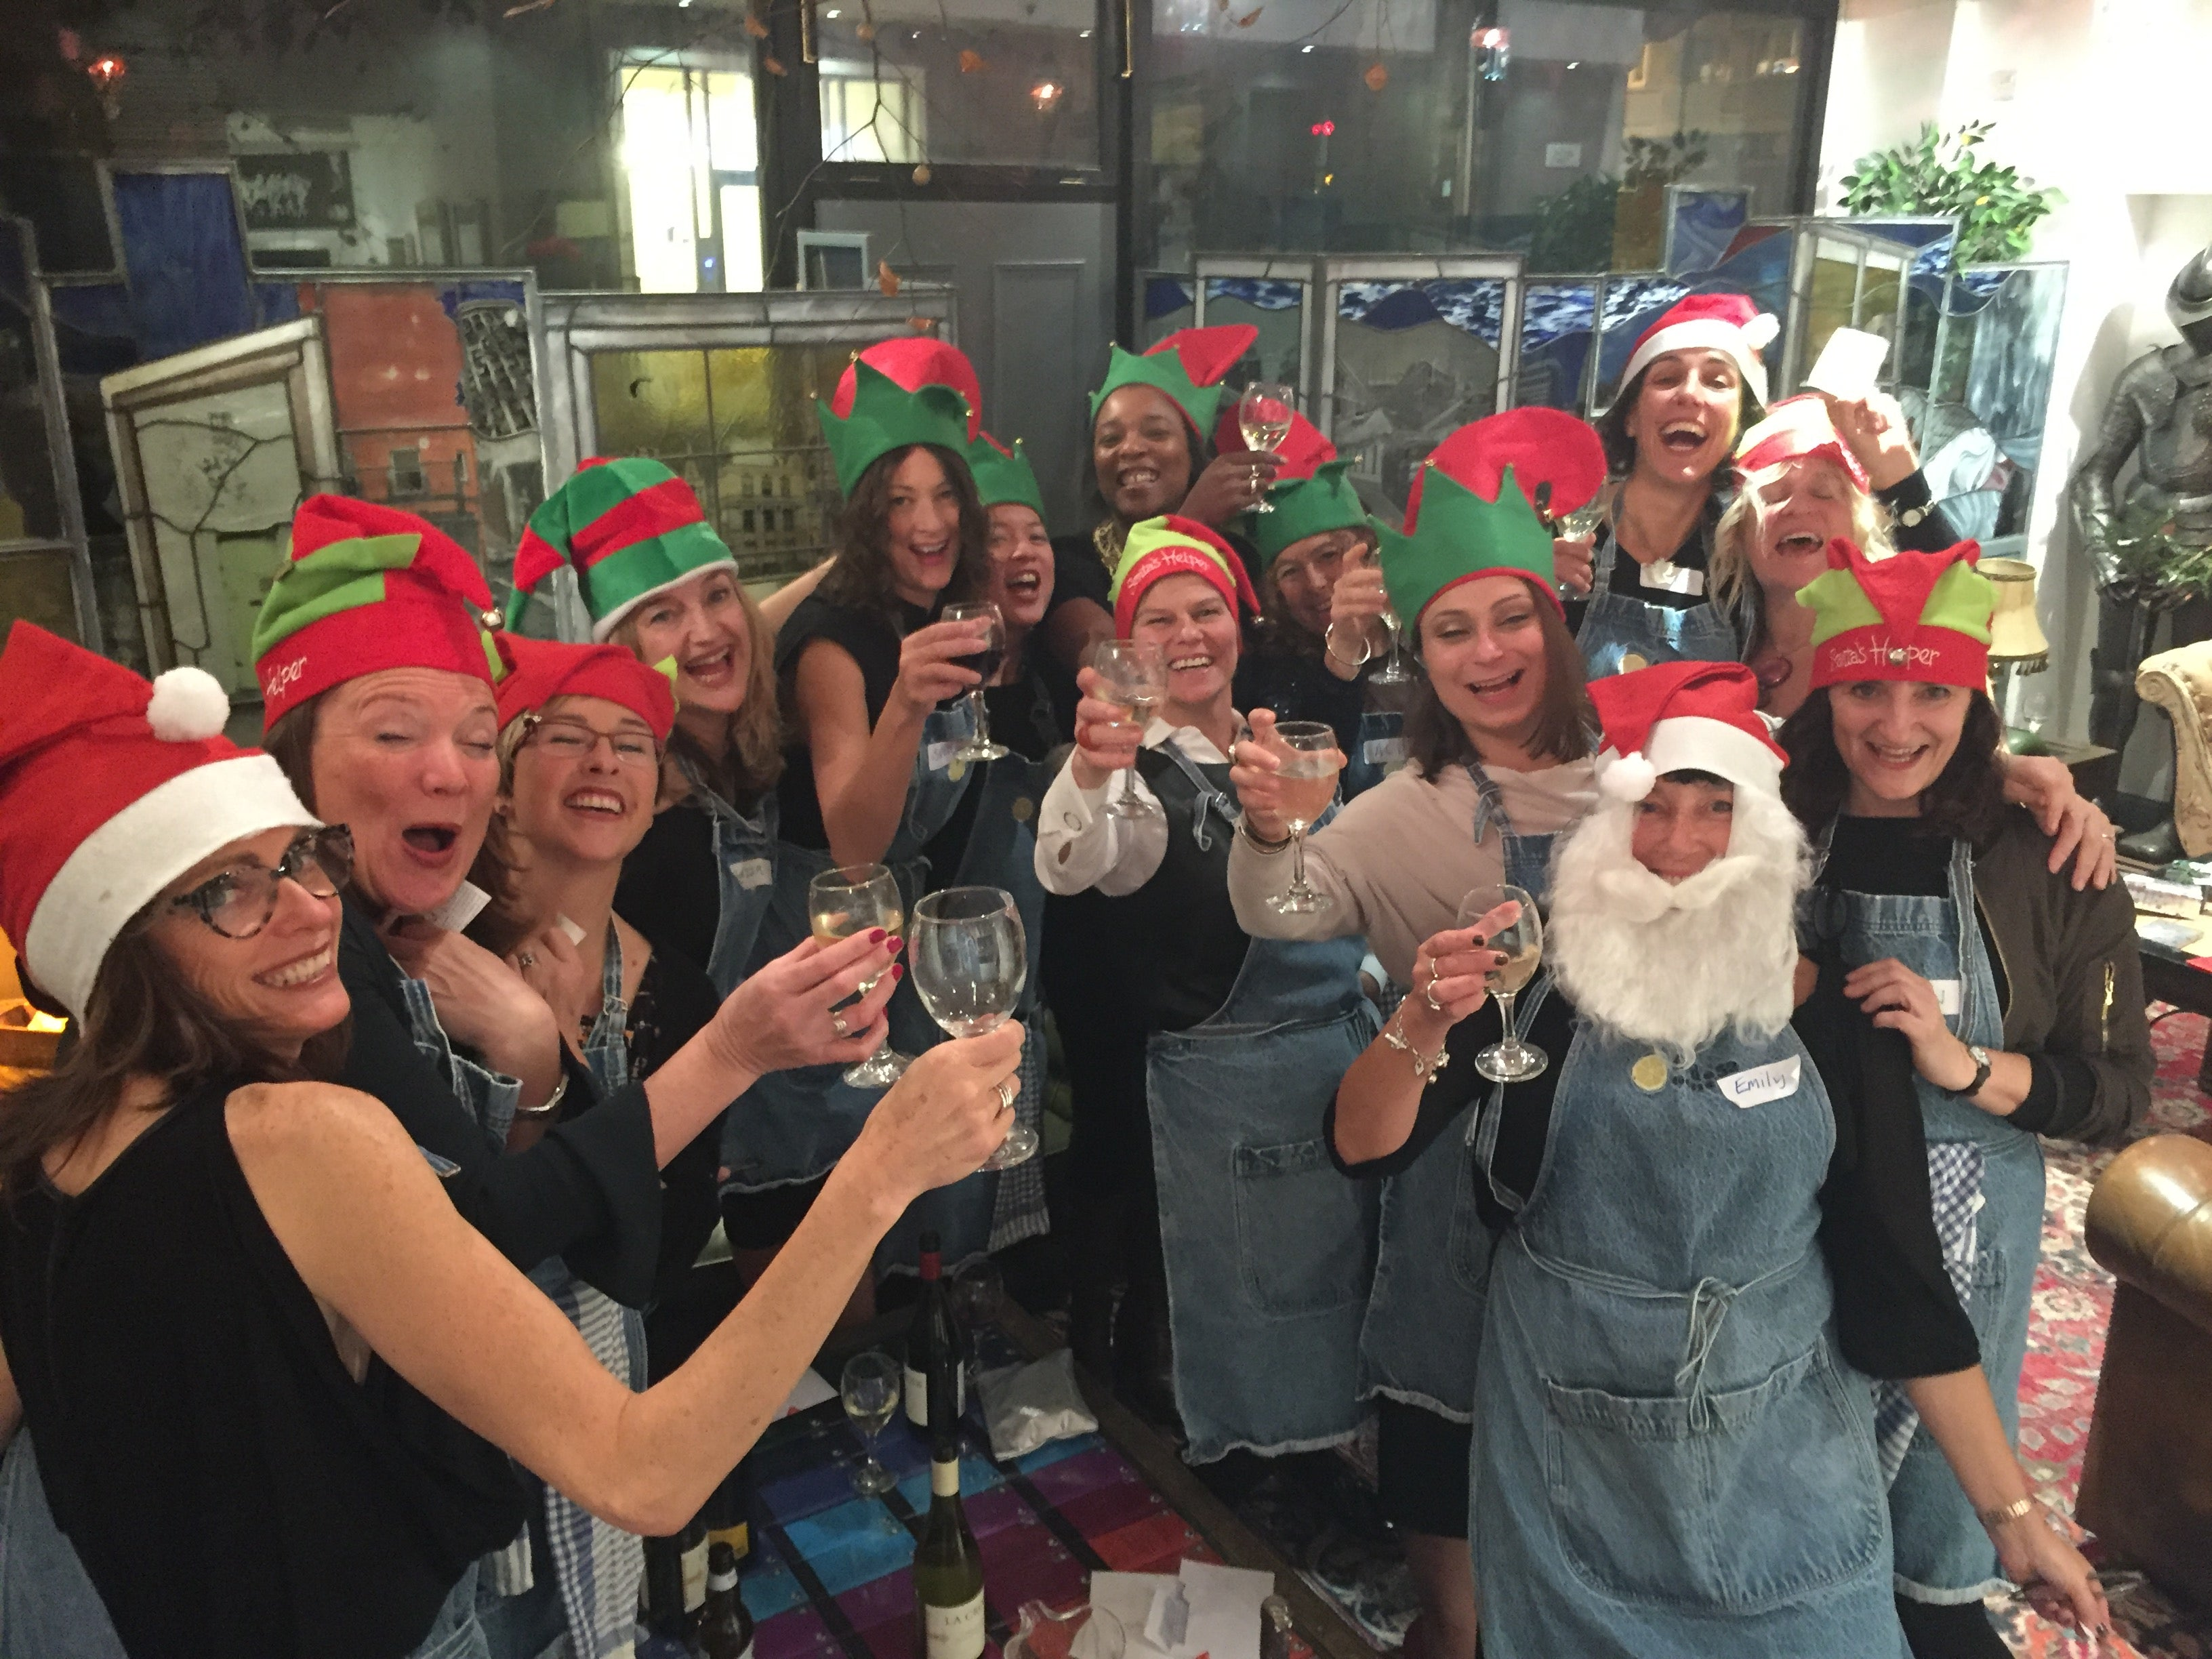 Christmas party cheer at Food at 52